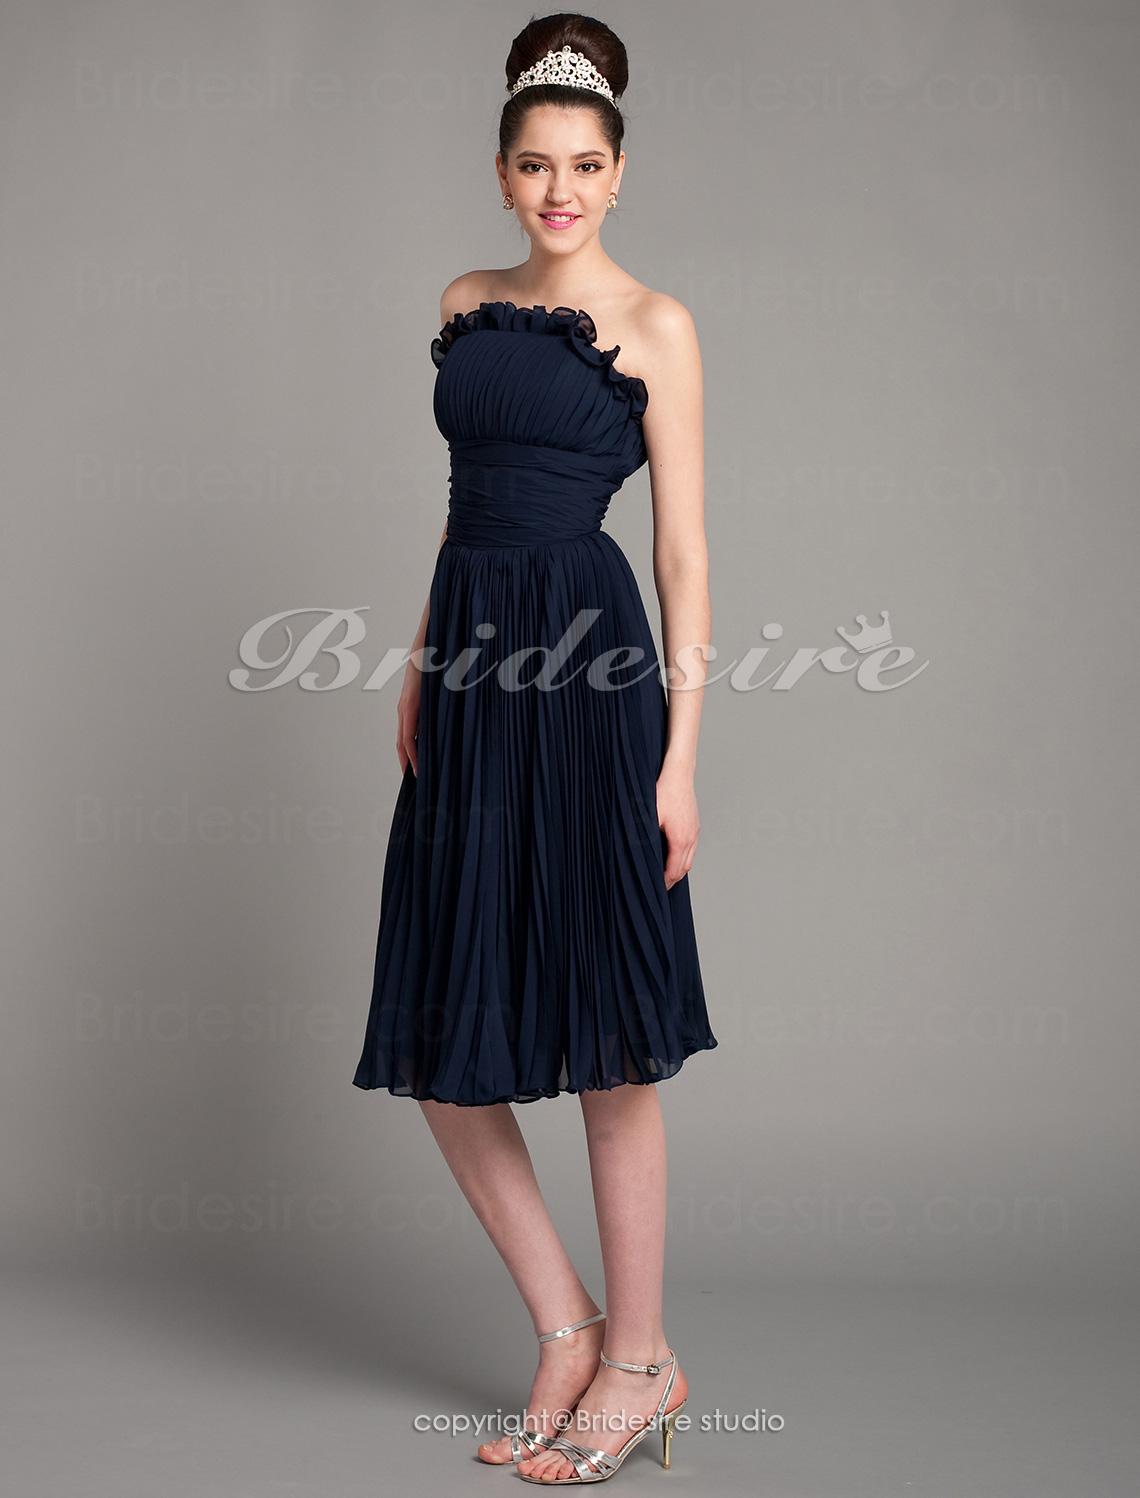 A-line Princess Knee-length Chiffon Strapless Cocktail Dress